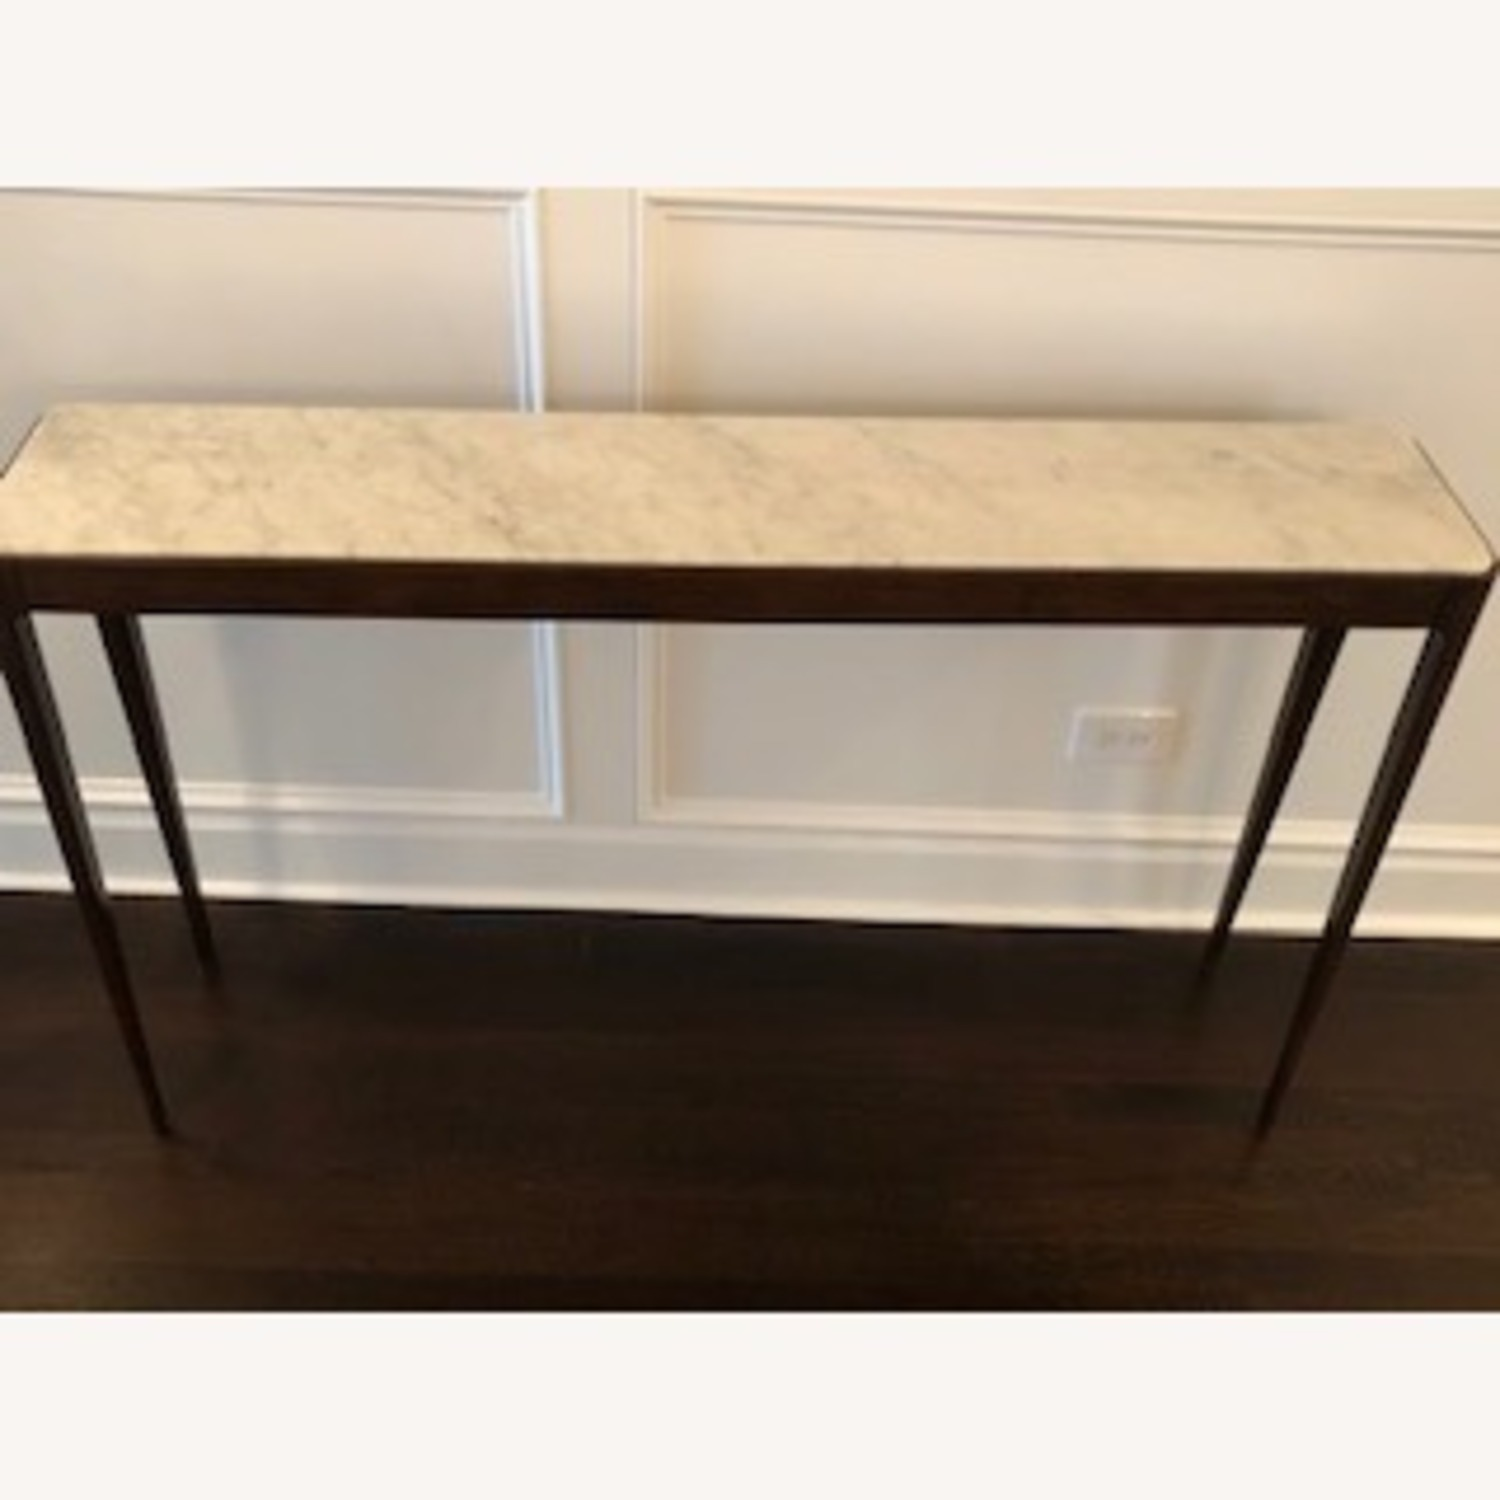 Stunning Carrera Marble and Walnut Console Table - image-3